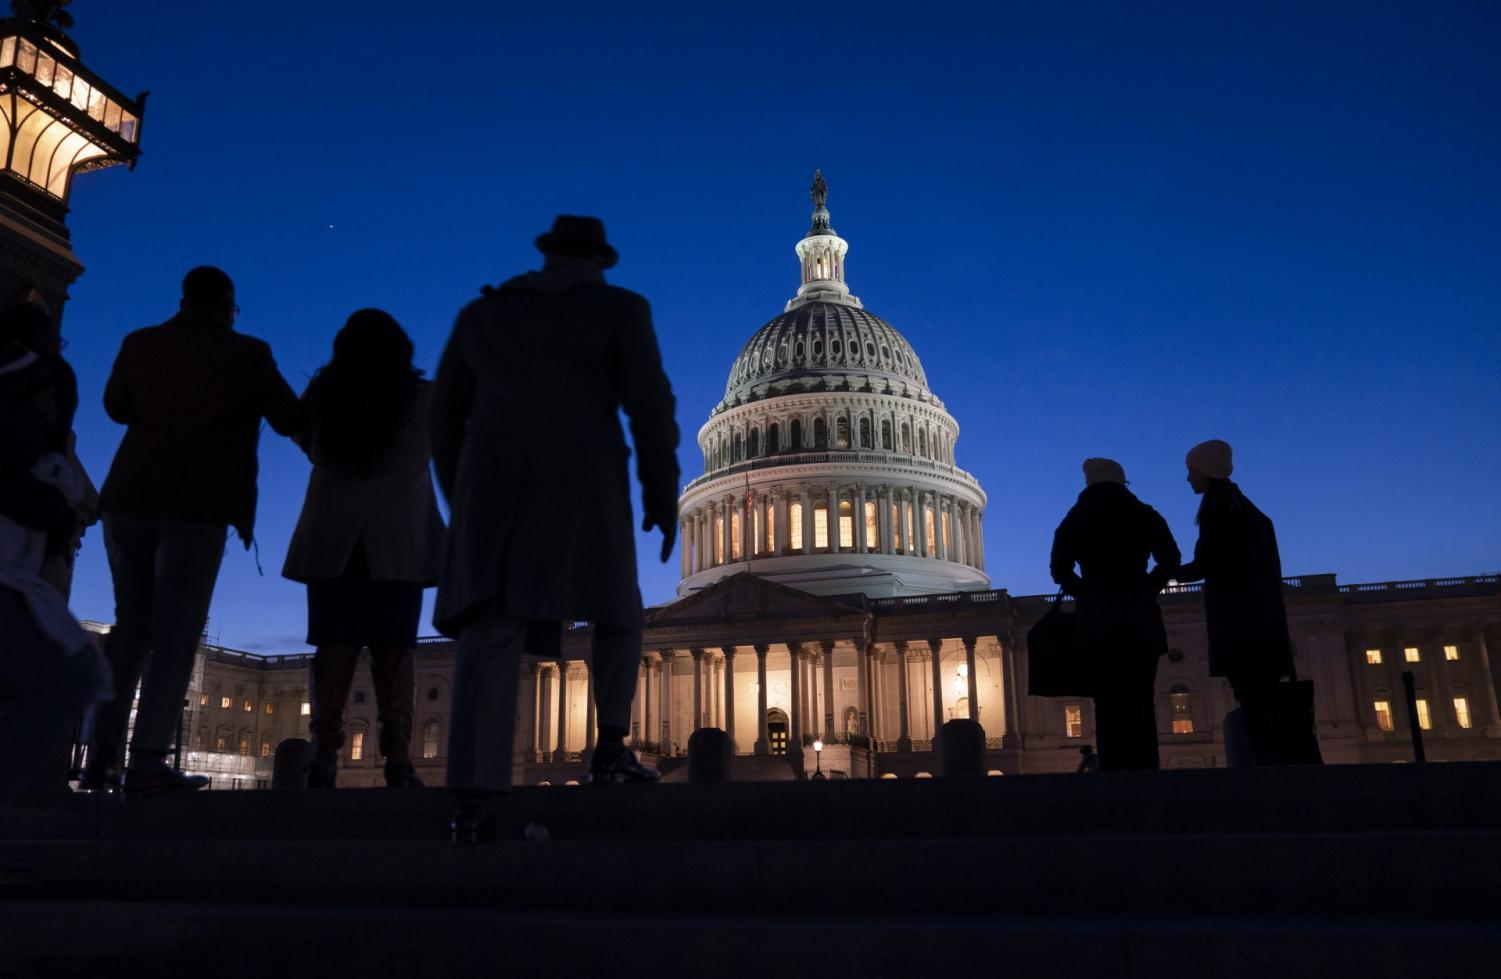 Night falls on the Capitol, in Washington during the impeachment trial of President Donald Trump. For all the gravity of a presidential impeachment trial, Americans don't seem to be giving it much weight. Web traffic and TV ratings tell a similar story, with public interest seeming to flag after the House voted last month to impeach a president for only the third time in U.S. history.